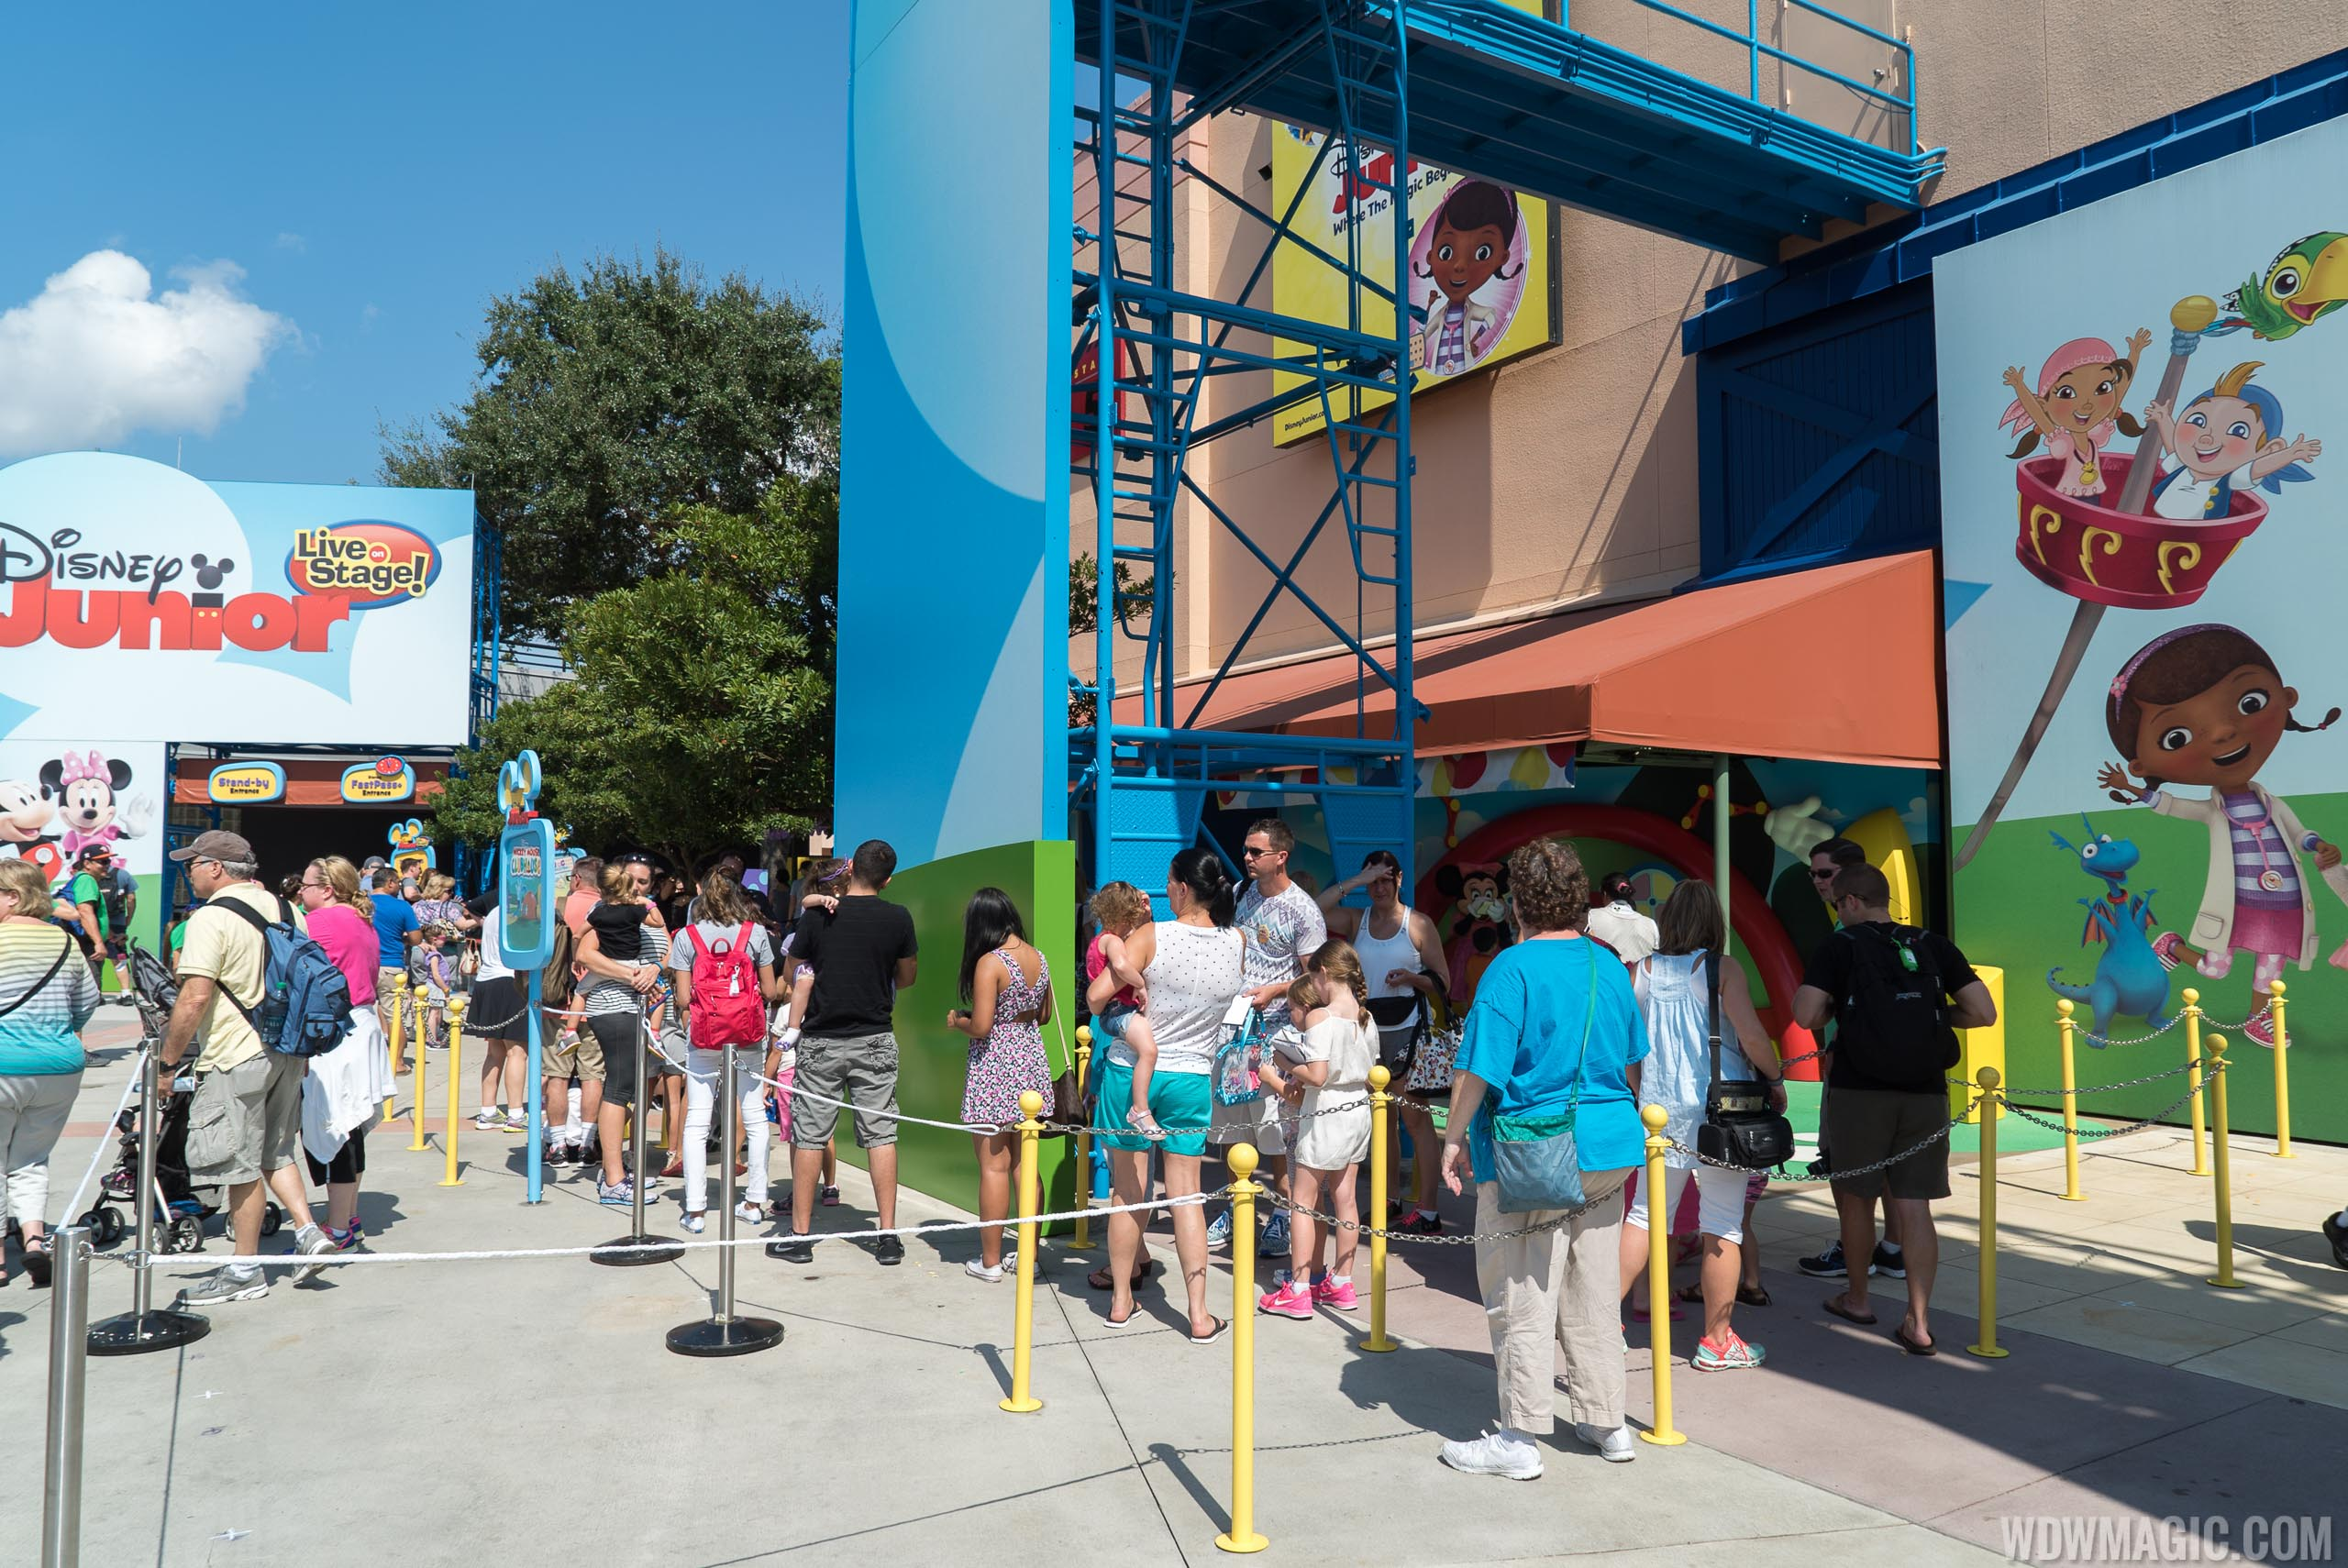 Disney's Hollywood Studios has a Disney Junior meet and greet area